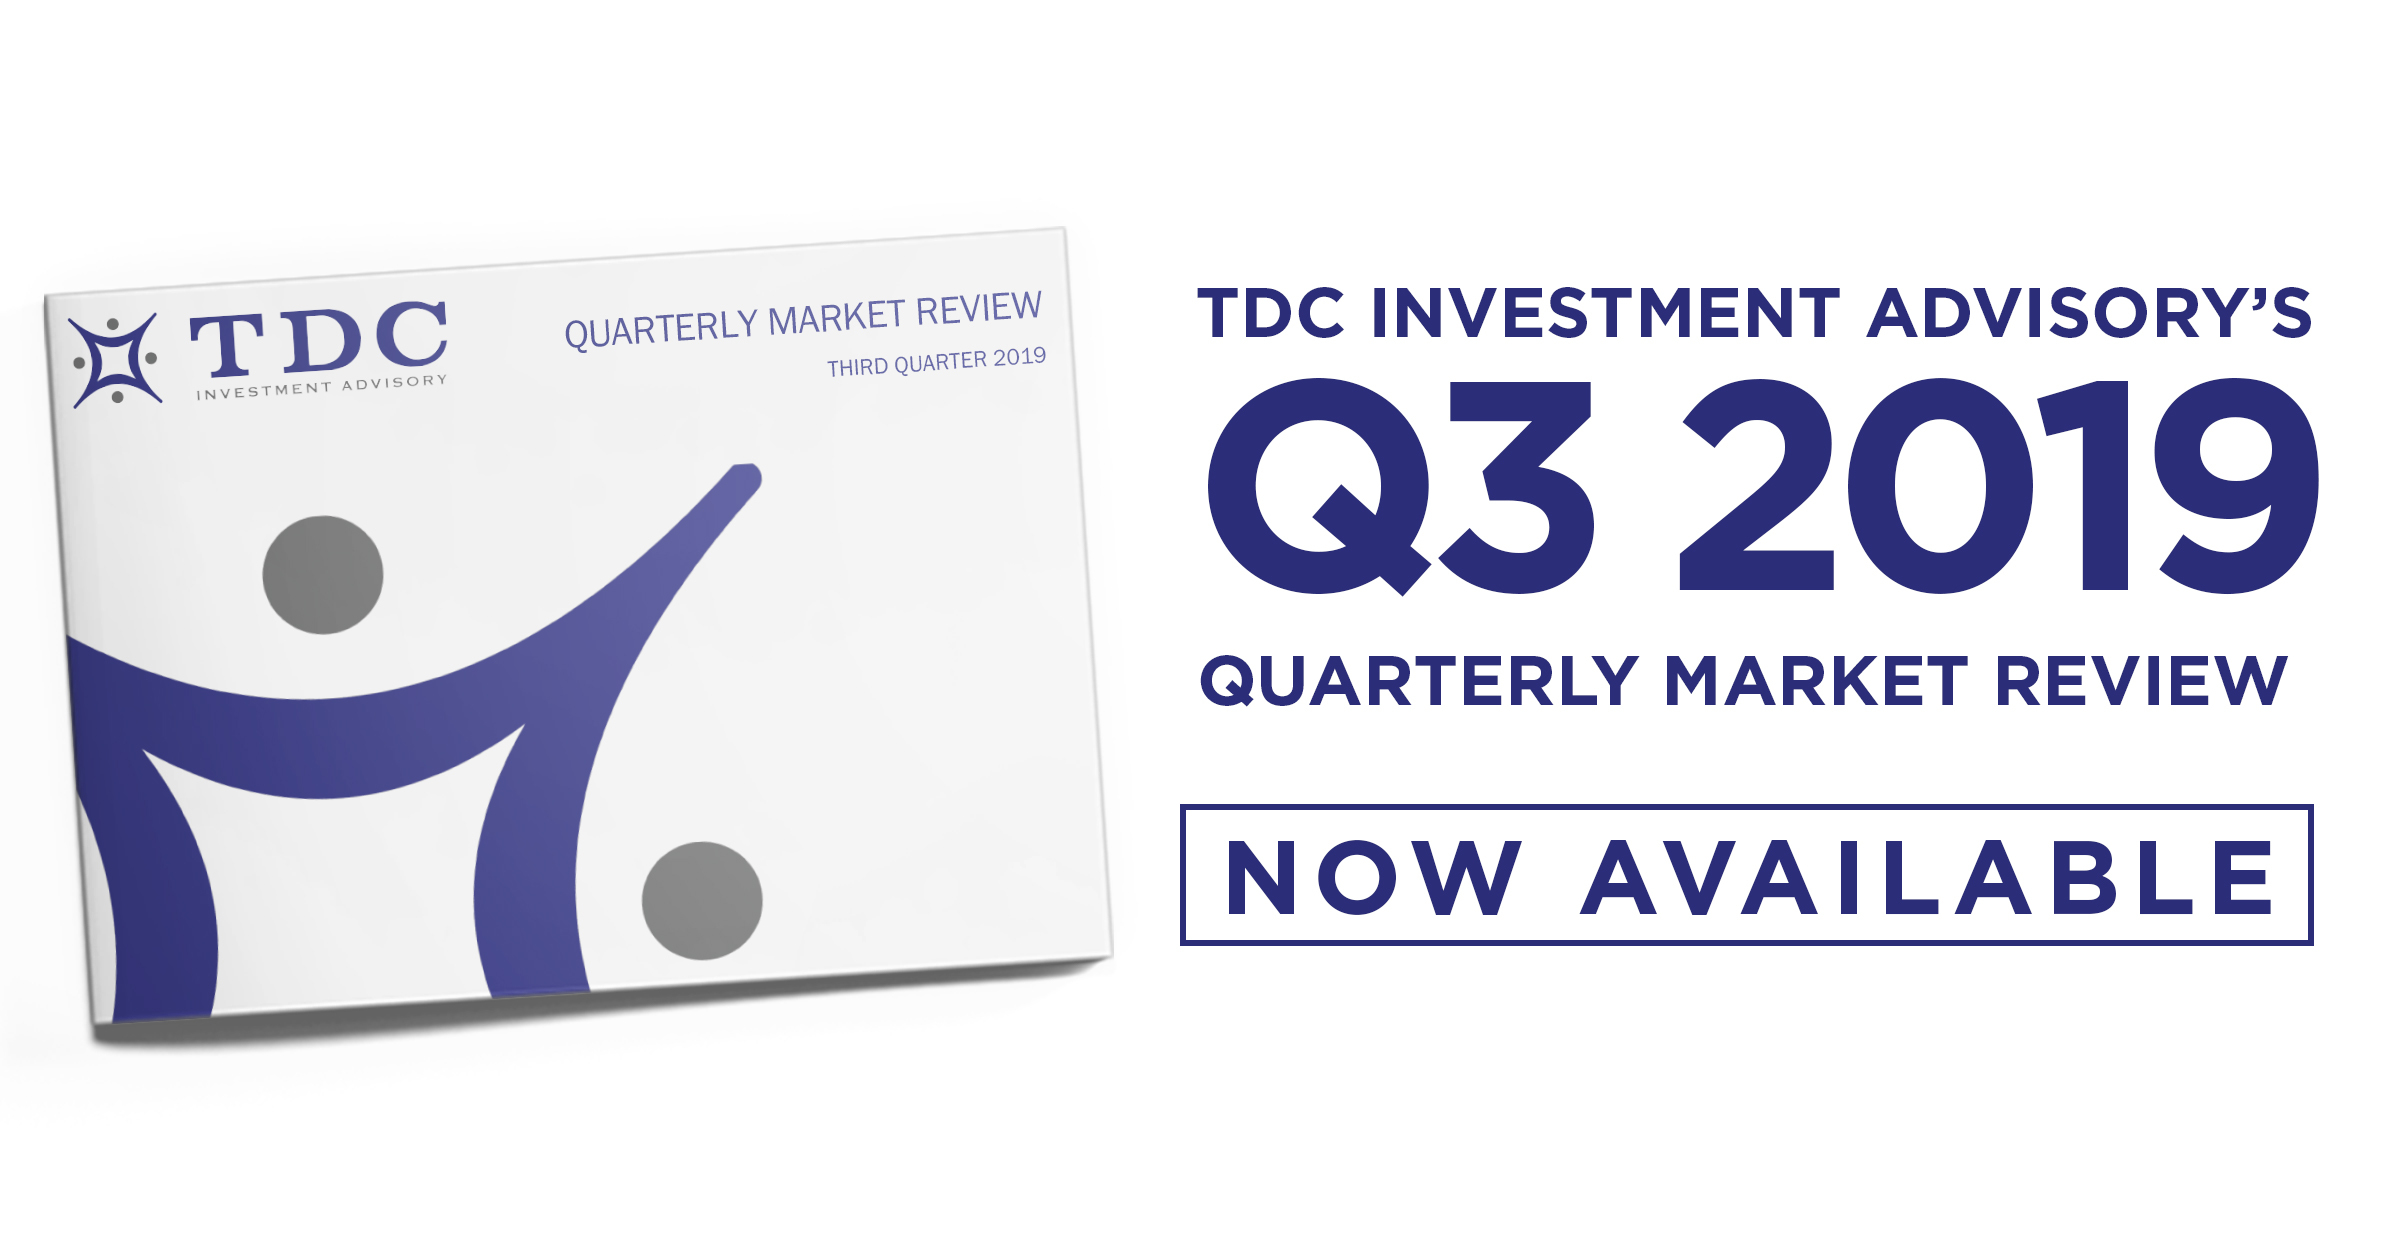 TDC's Quarterly Market Review for Q3 2019 is Now Available